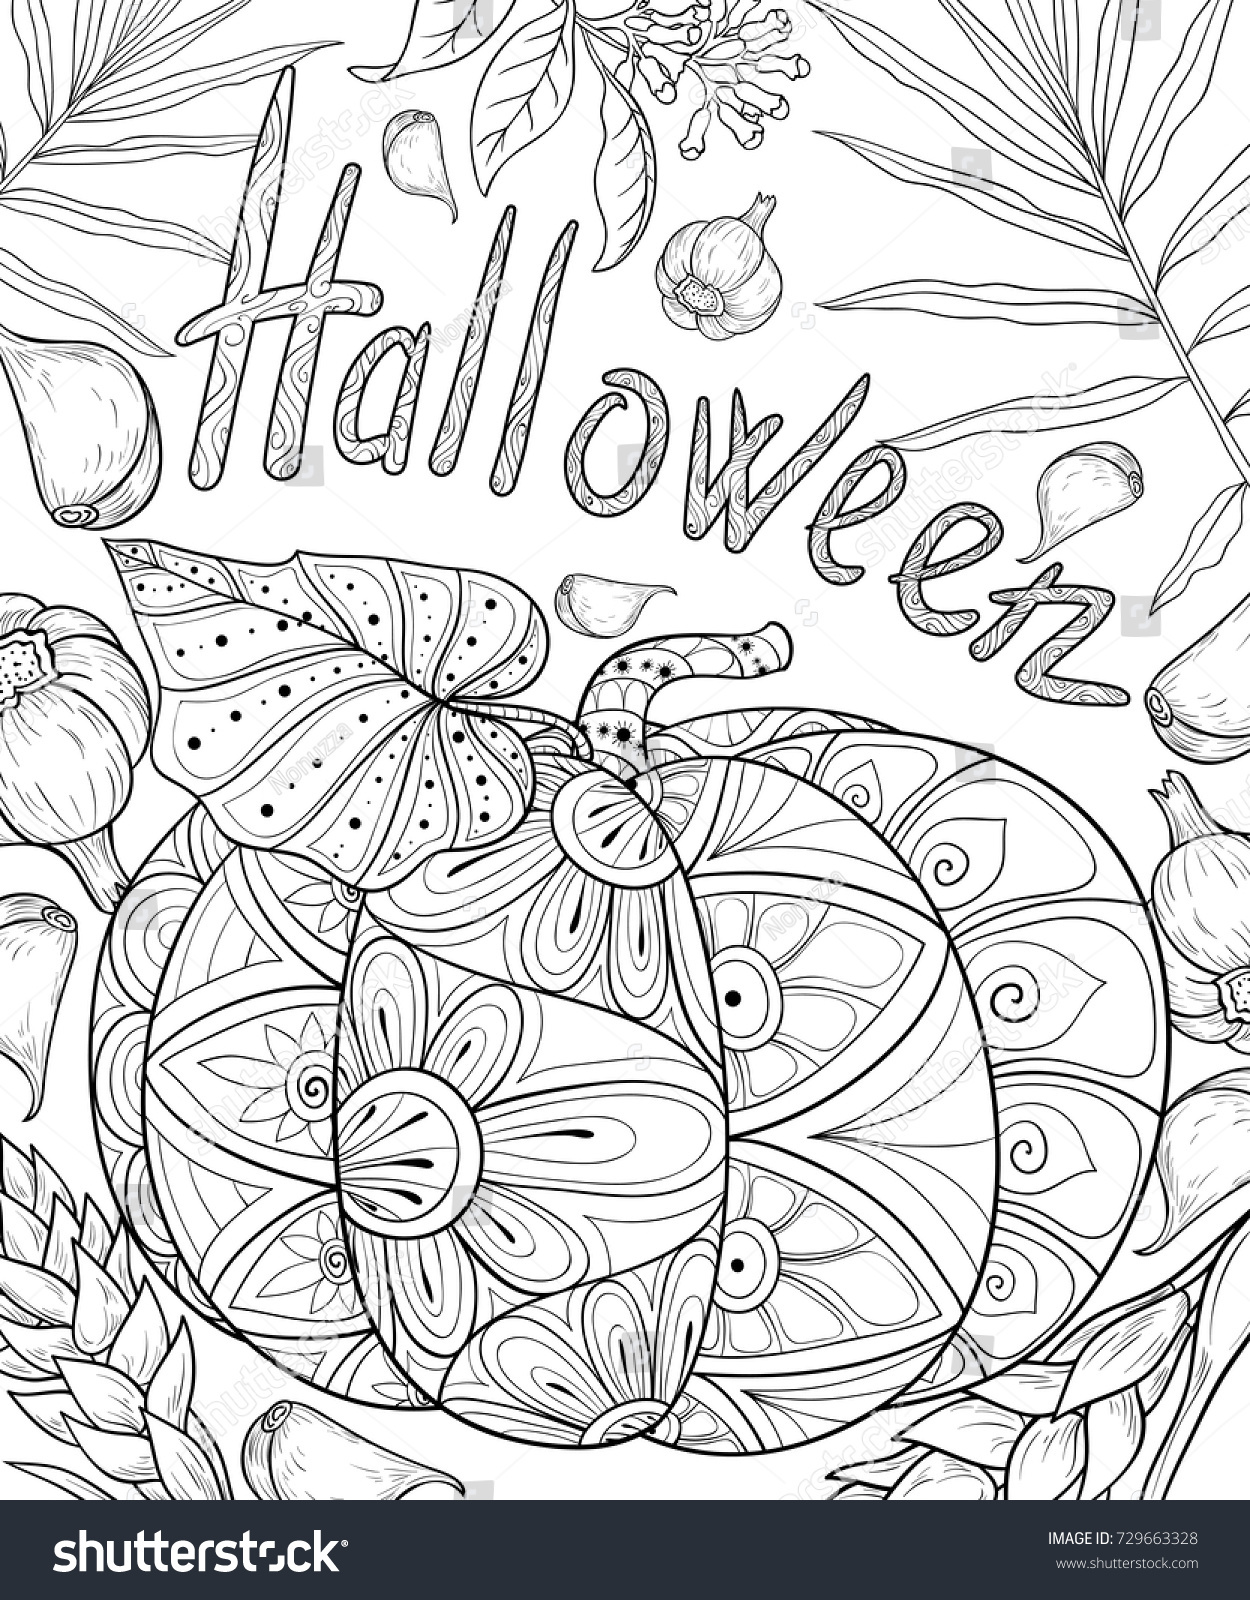 Halloween art therapy coloring pages - Adult Coloring Page Book A Halloween Day Zen Art Style Illustration